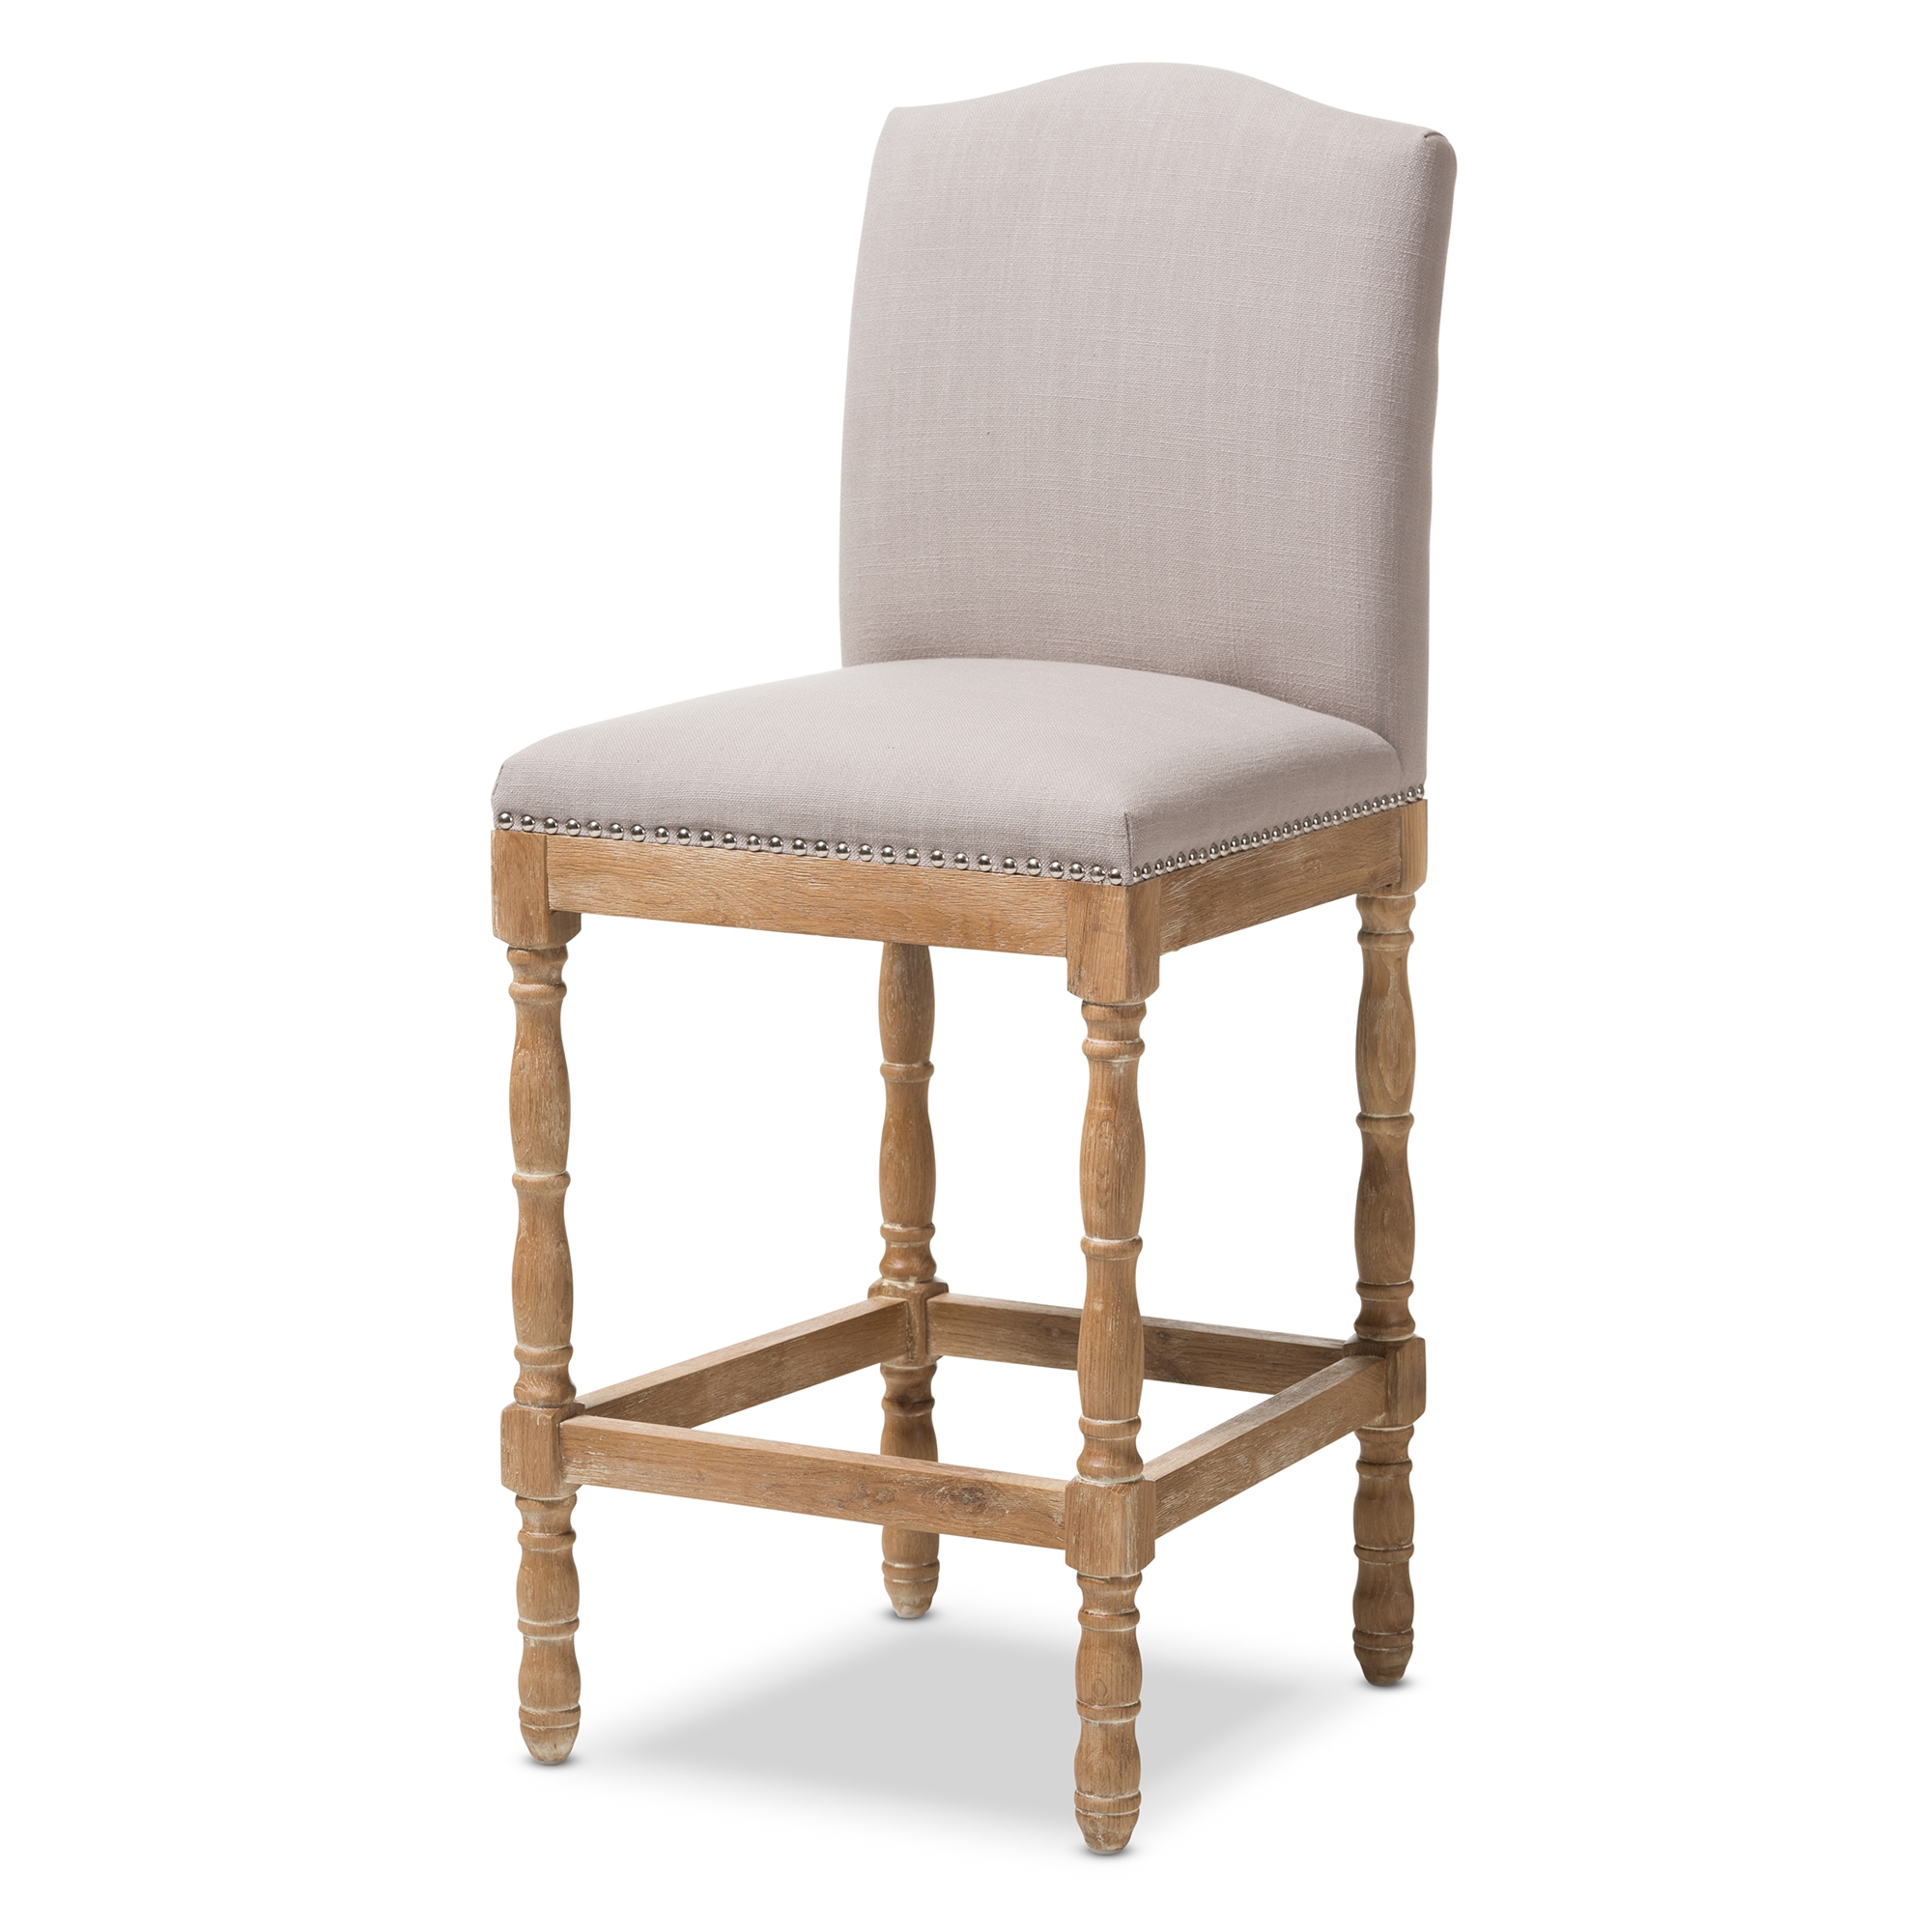 uk metal bar ideas counter kitchen stools stool cushions traditional style back with country ladder cottage glacier